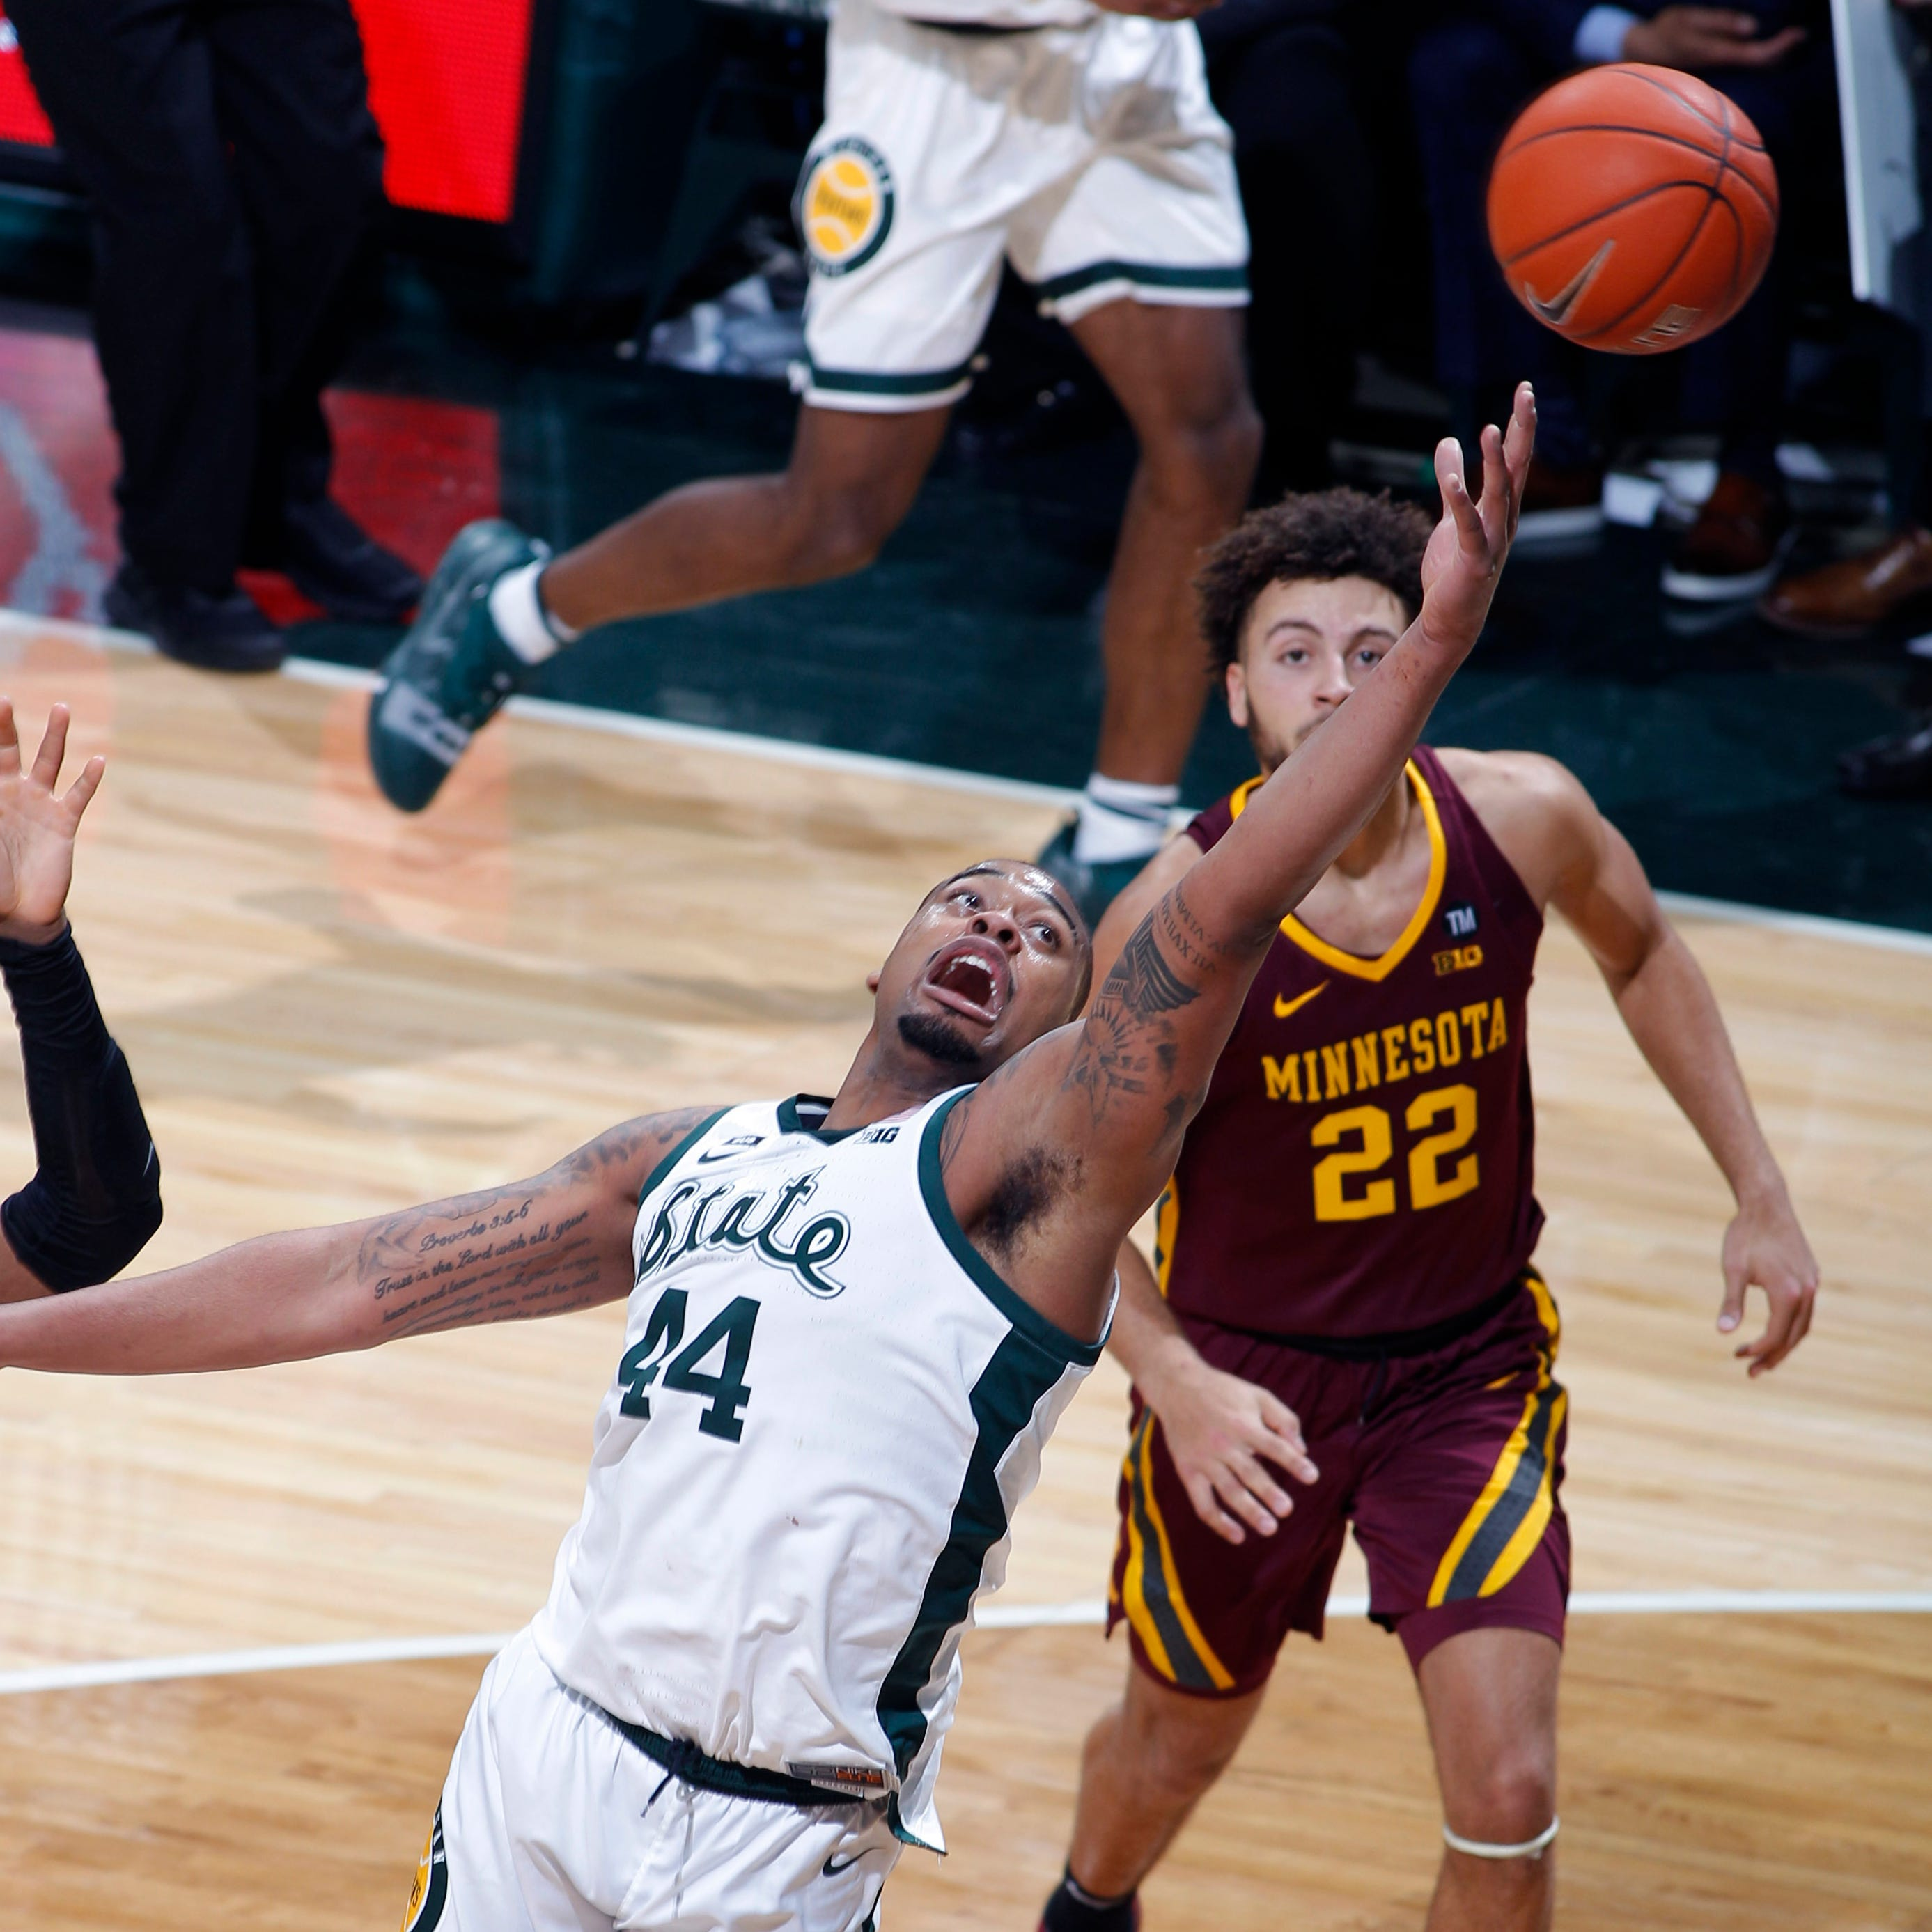 Magic Johnson called out MSU's Nick Ward, who responded vs. Minnesota